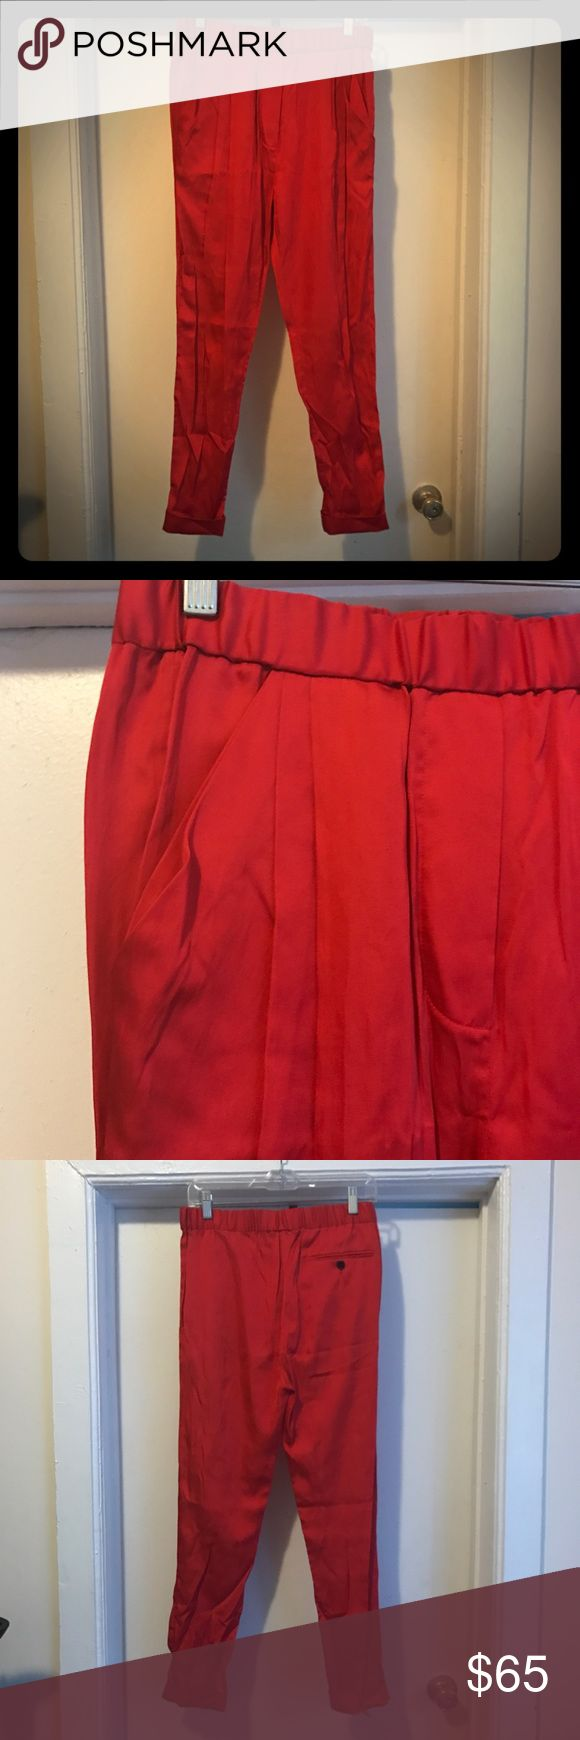 3.1 Phillip Lim RED JOGGER PANTS WITH PLEATS 3.1 Phillip Lim red jogger pants! Elastic waistband and pleating details at the top. Very flattering! 3.1 Phillip Lim Pants Track Pants & Joggers